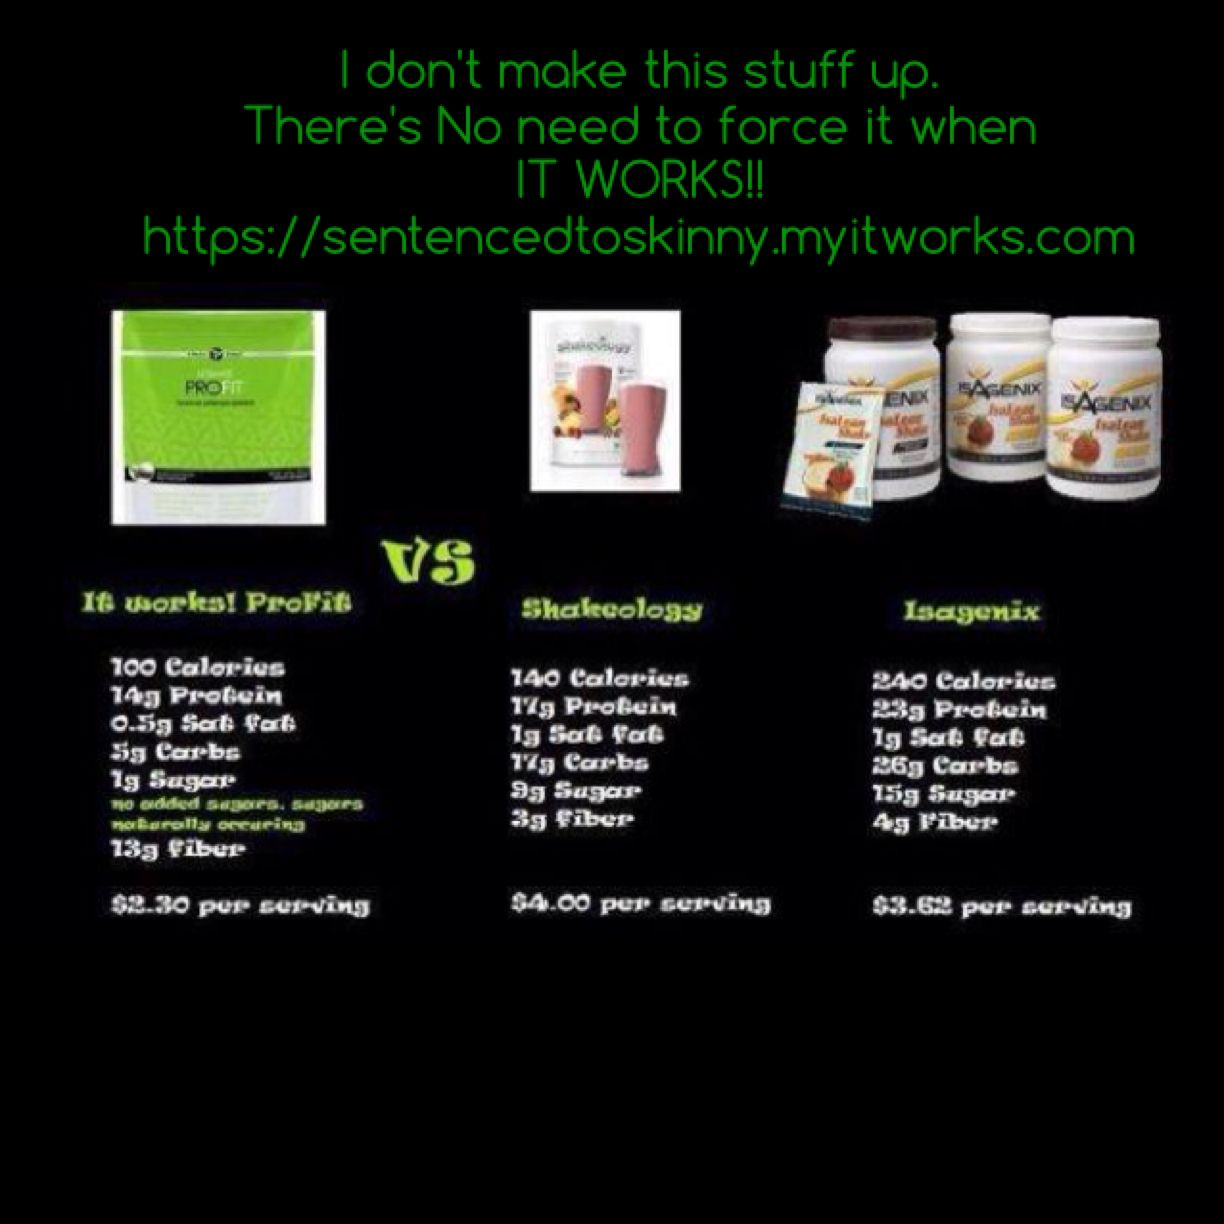 Pro Fit is an amazing a delicious protein powder! You can even bake with it! It Works!